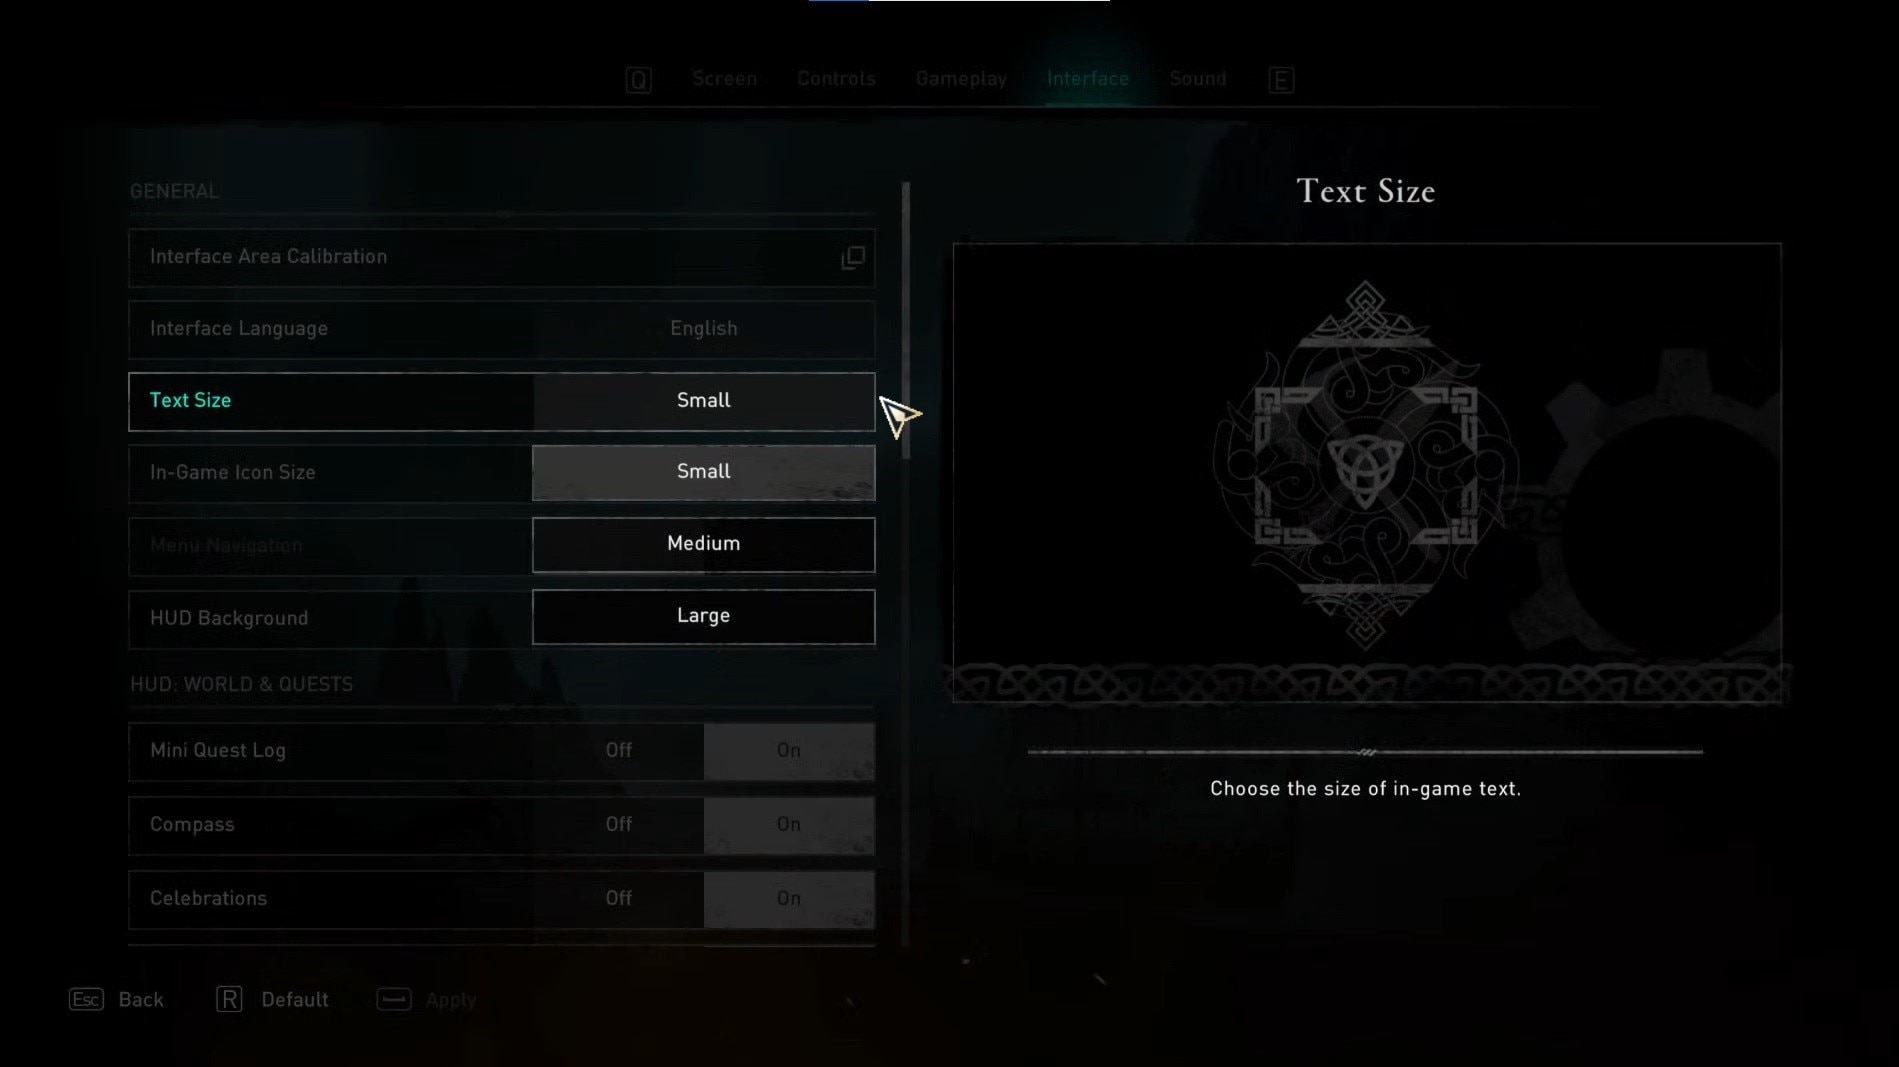 Change text size in settings